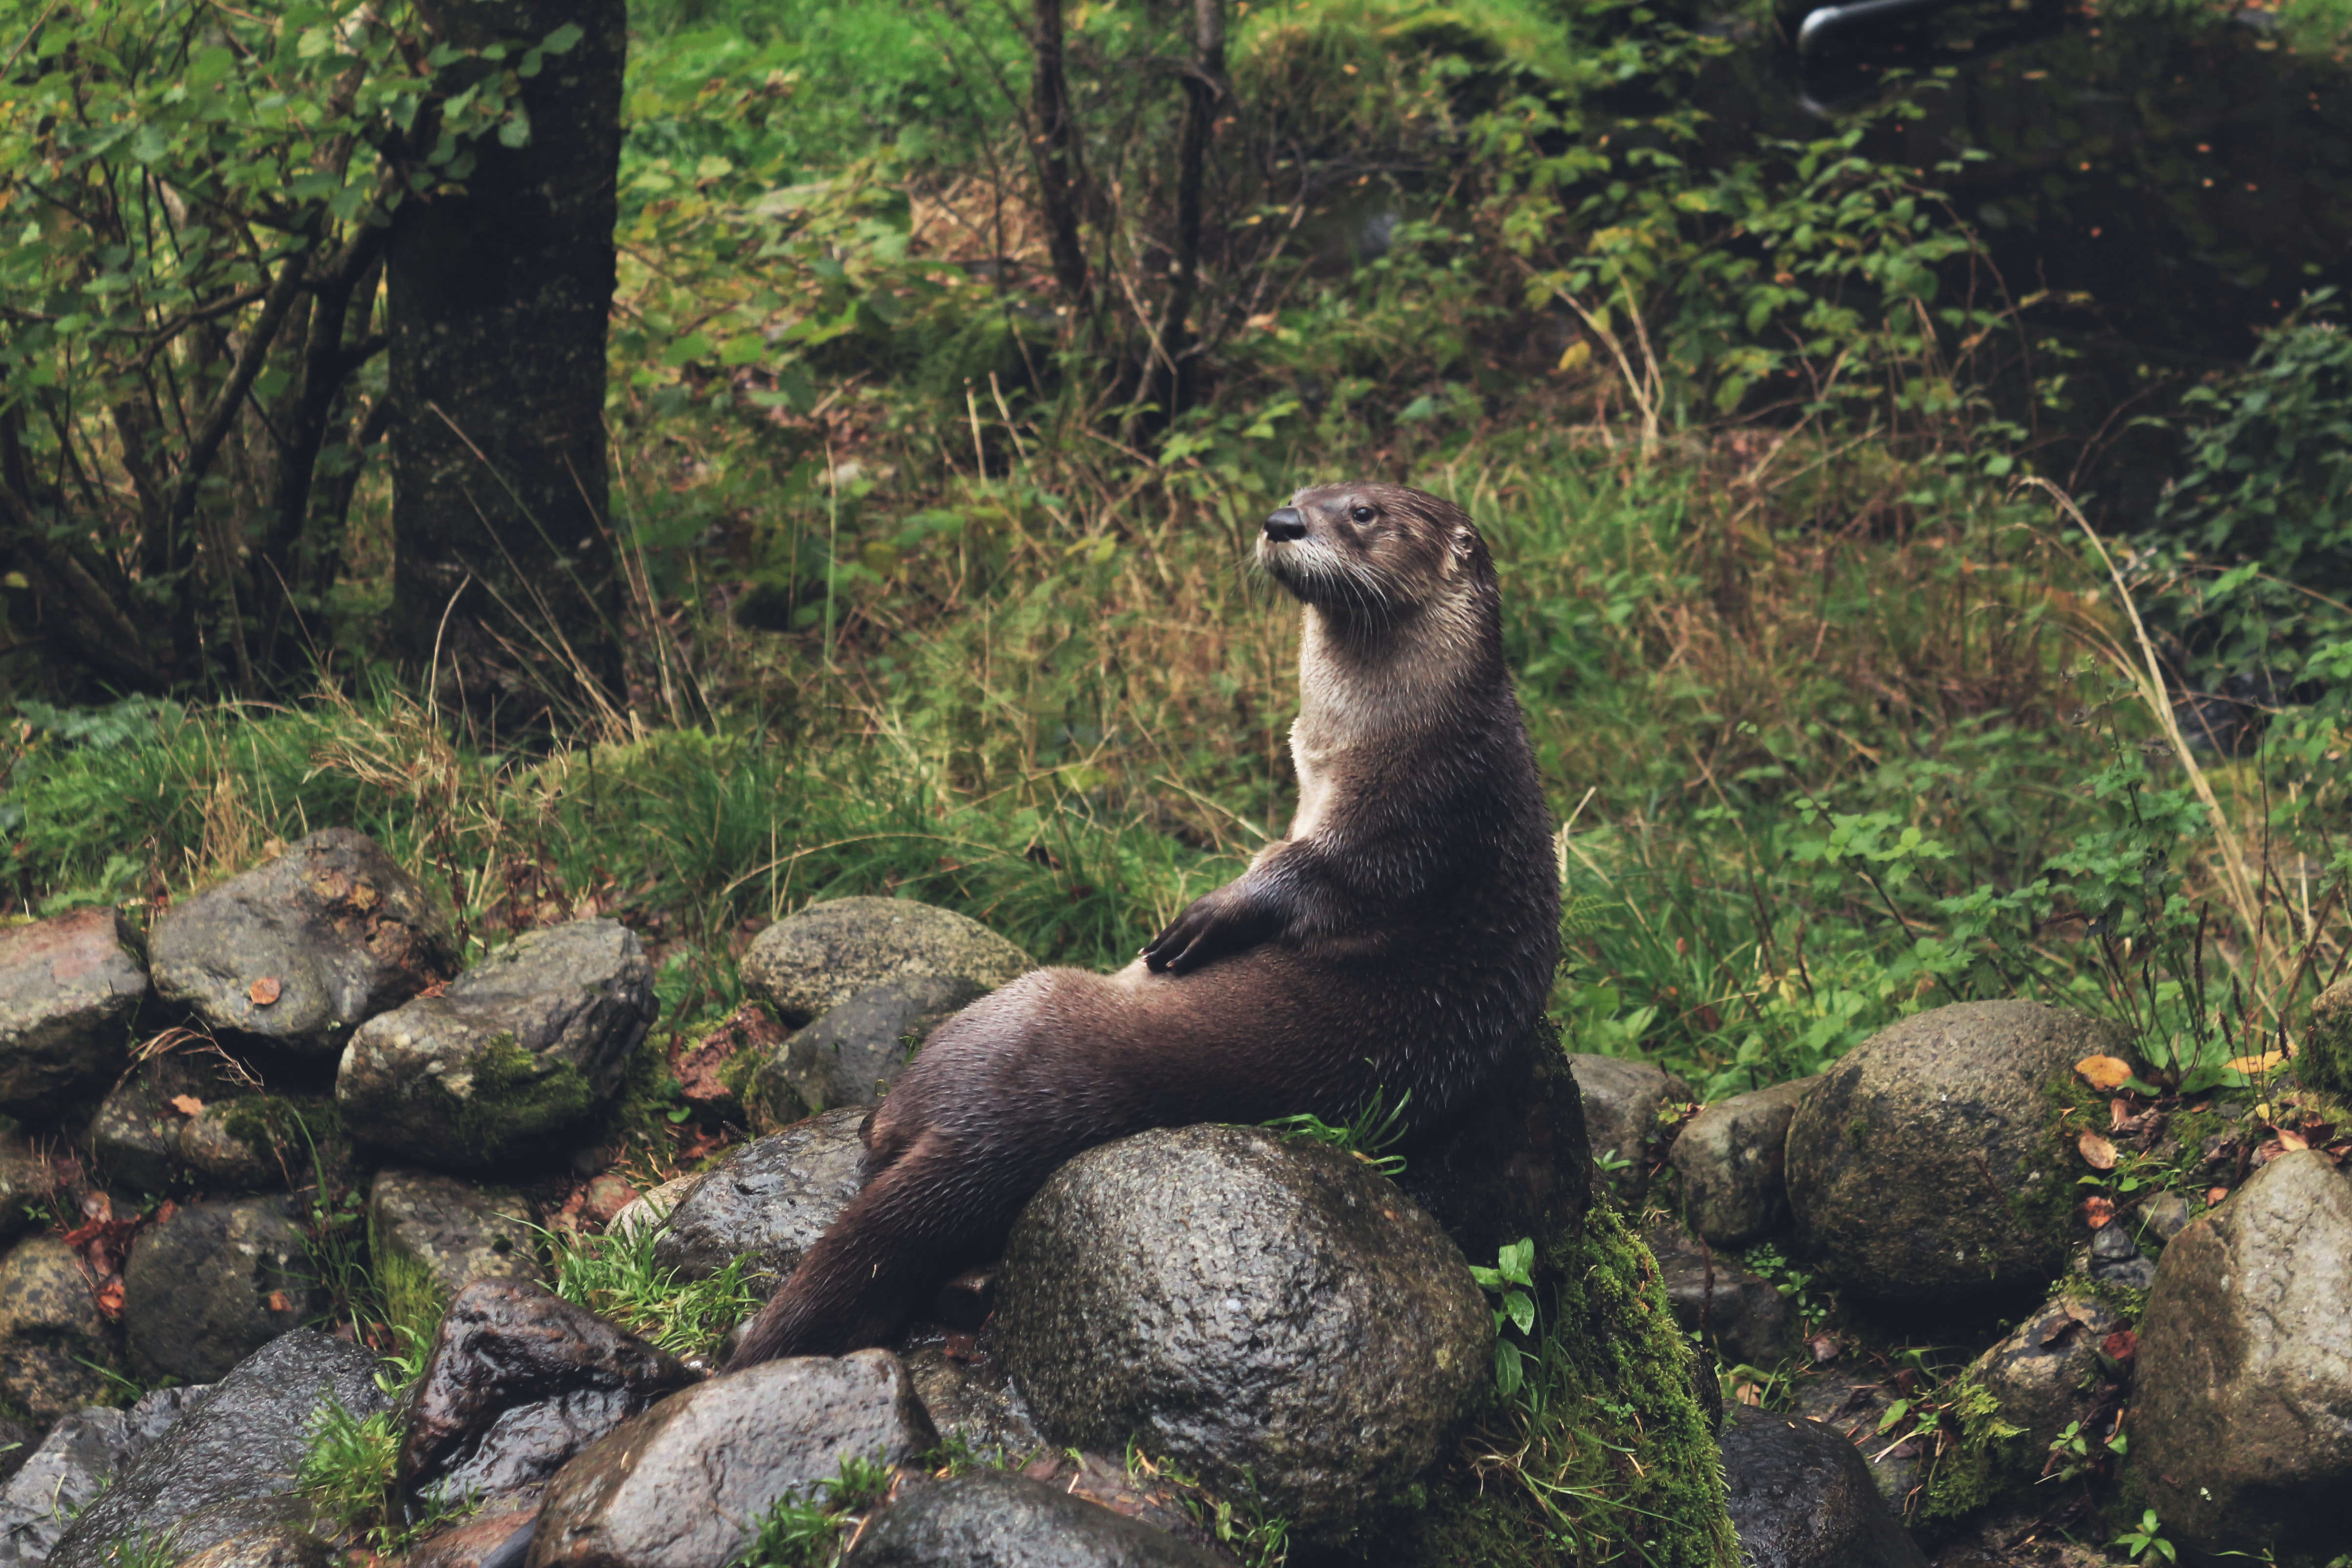 An otter seated comfortably on moist round rocks